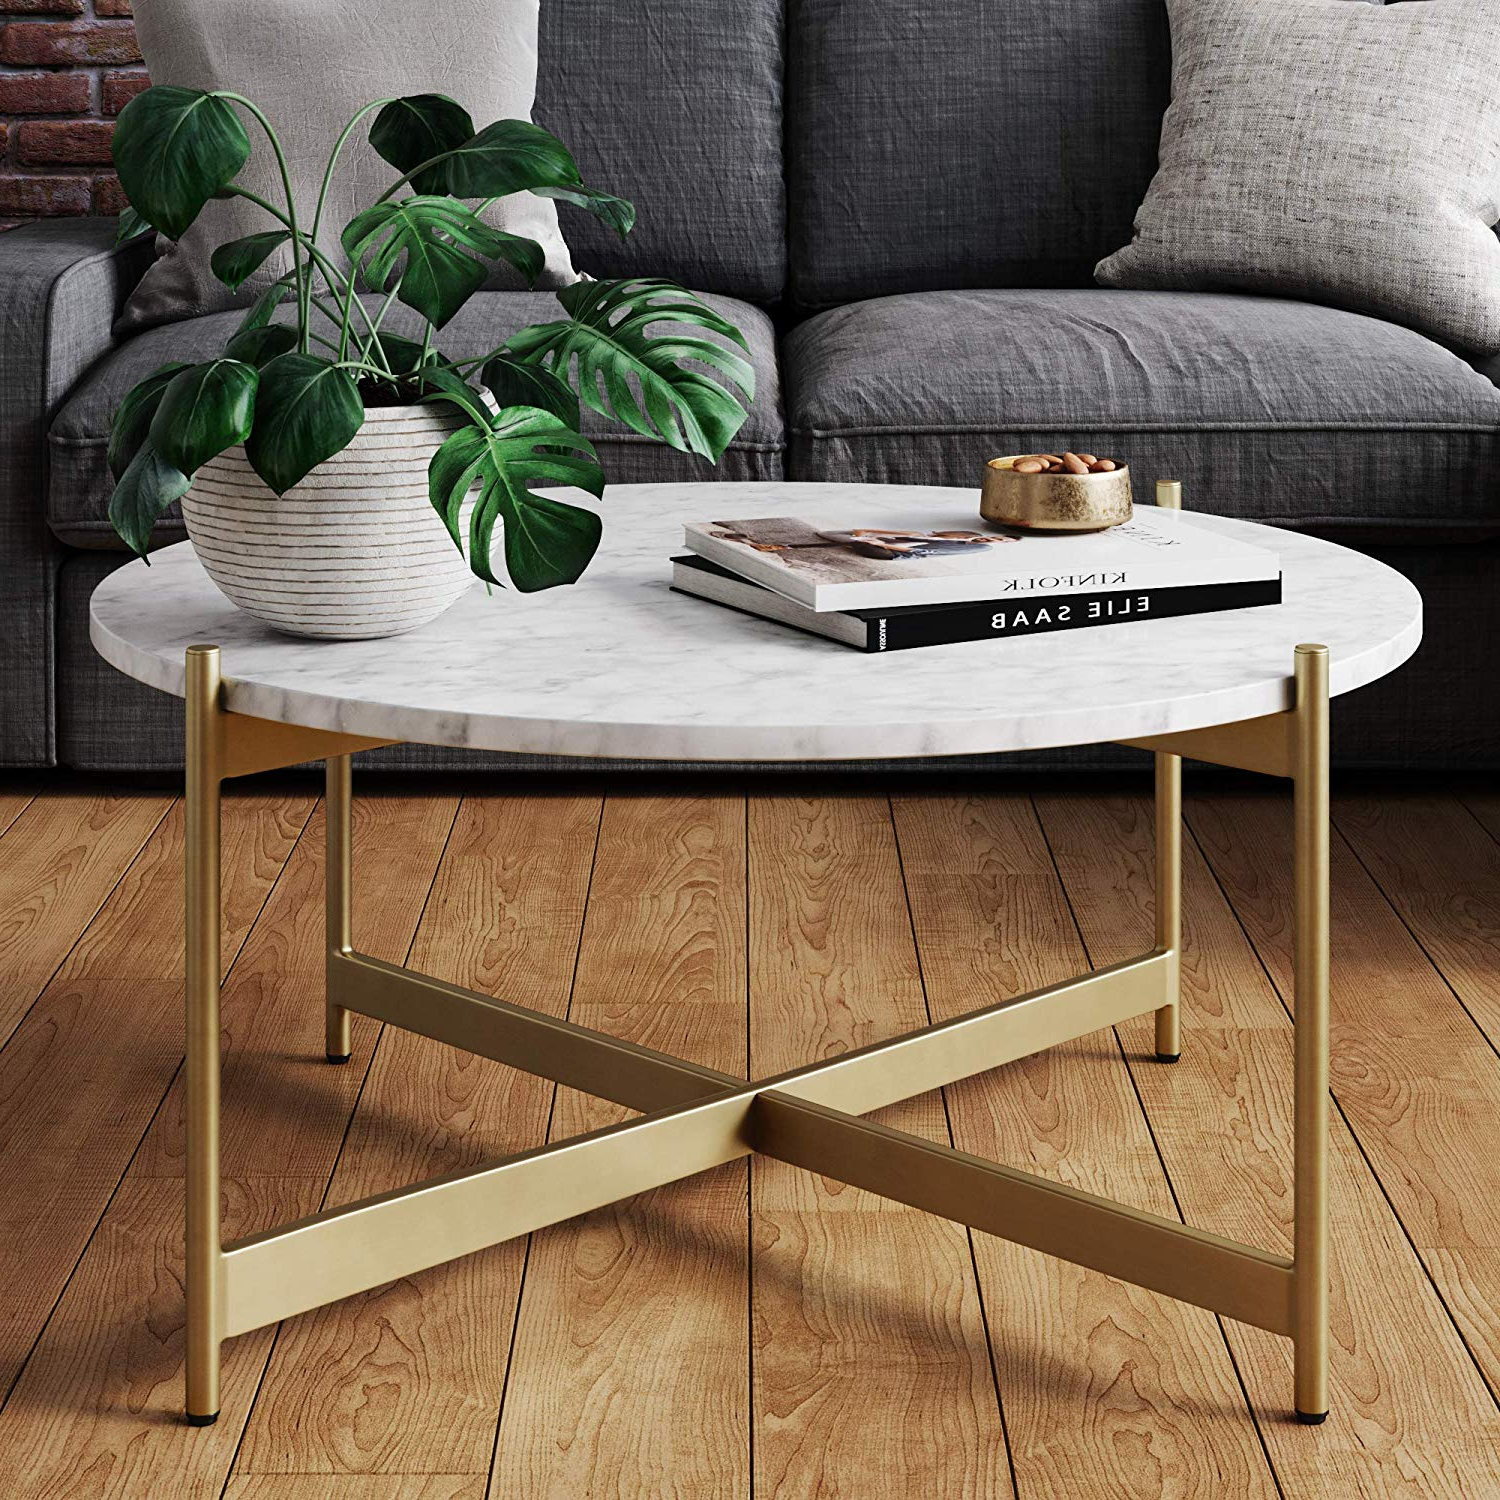 Most Recent Nathan James Piper Faux Marble Round Modern Living Room Coffee Table With  Brass Metal Frame, Gold Intended For Faux Marble Finish Metal Contemporary Dining Tables (View 10 of 25)